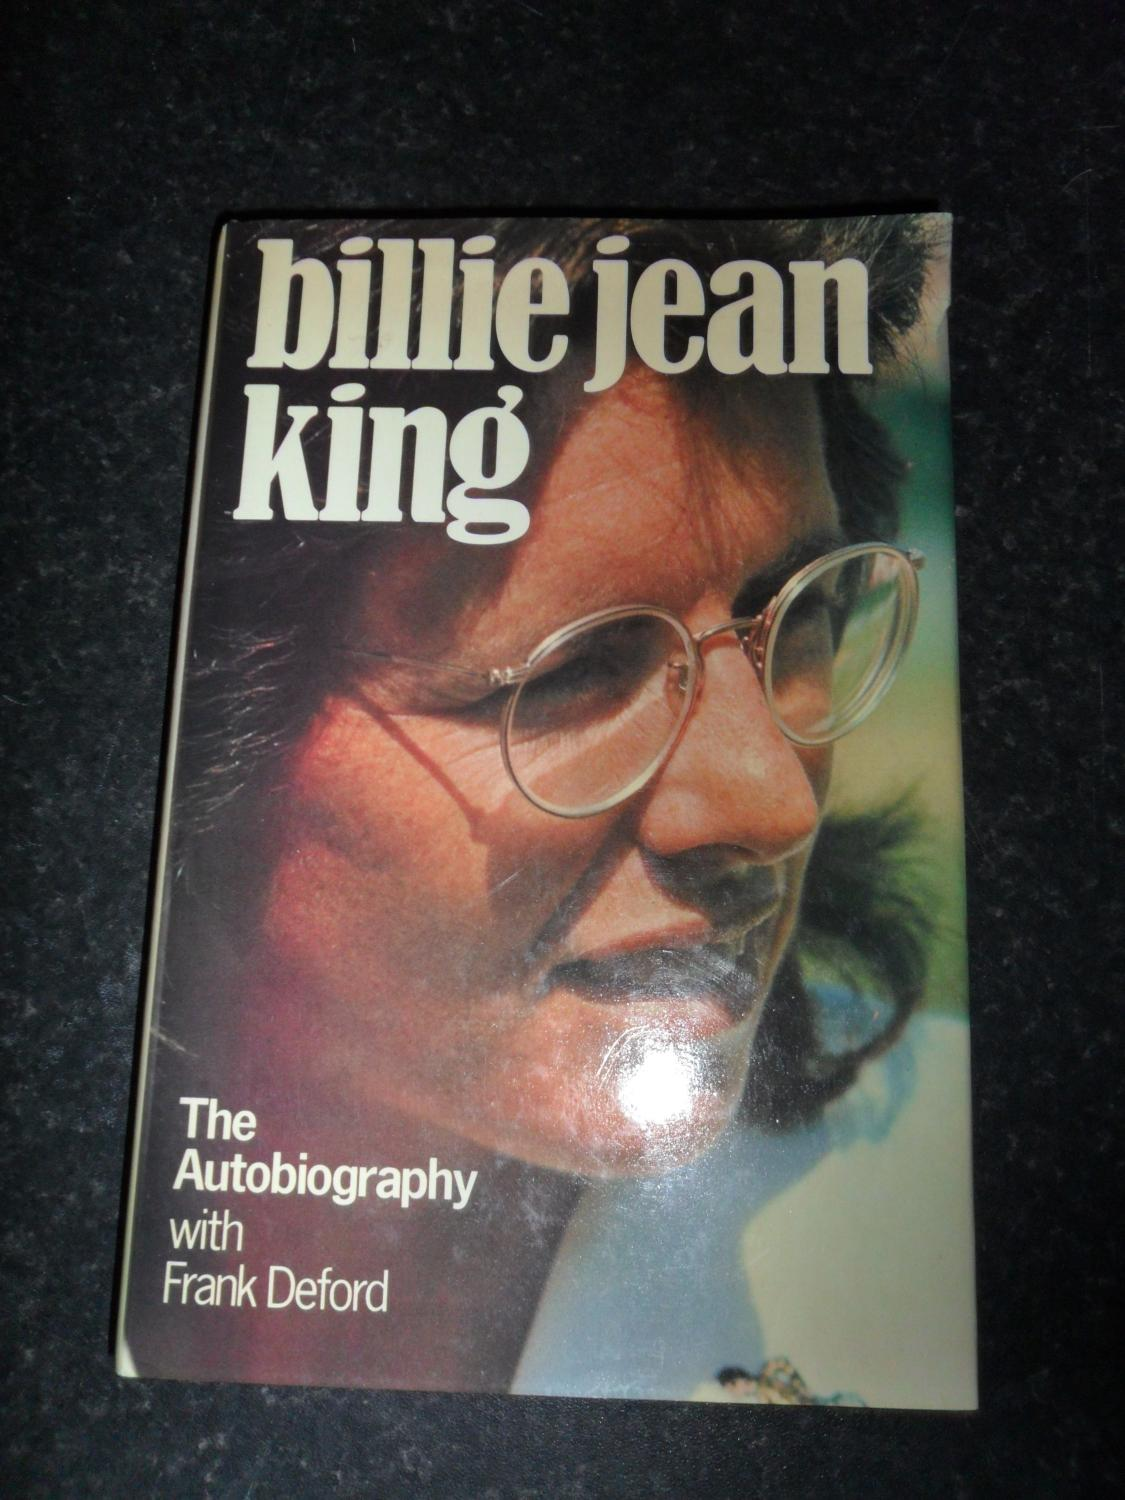 Billie Jean King the Autobiography - King Bille Jean, Deford F